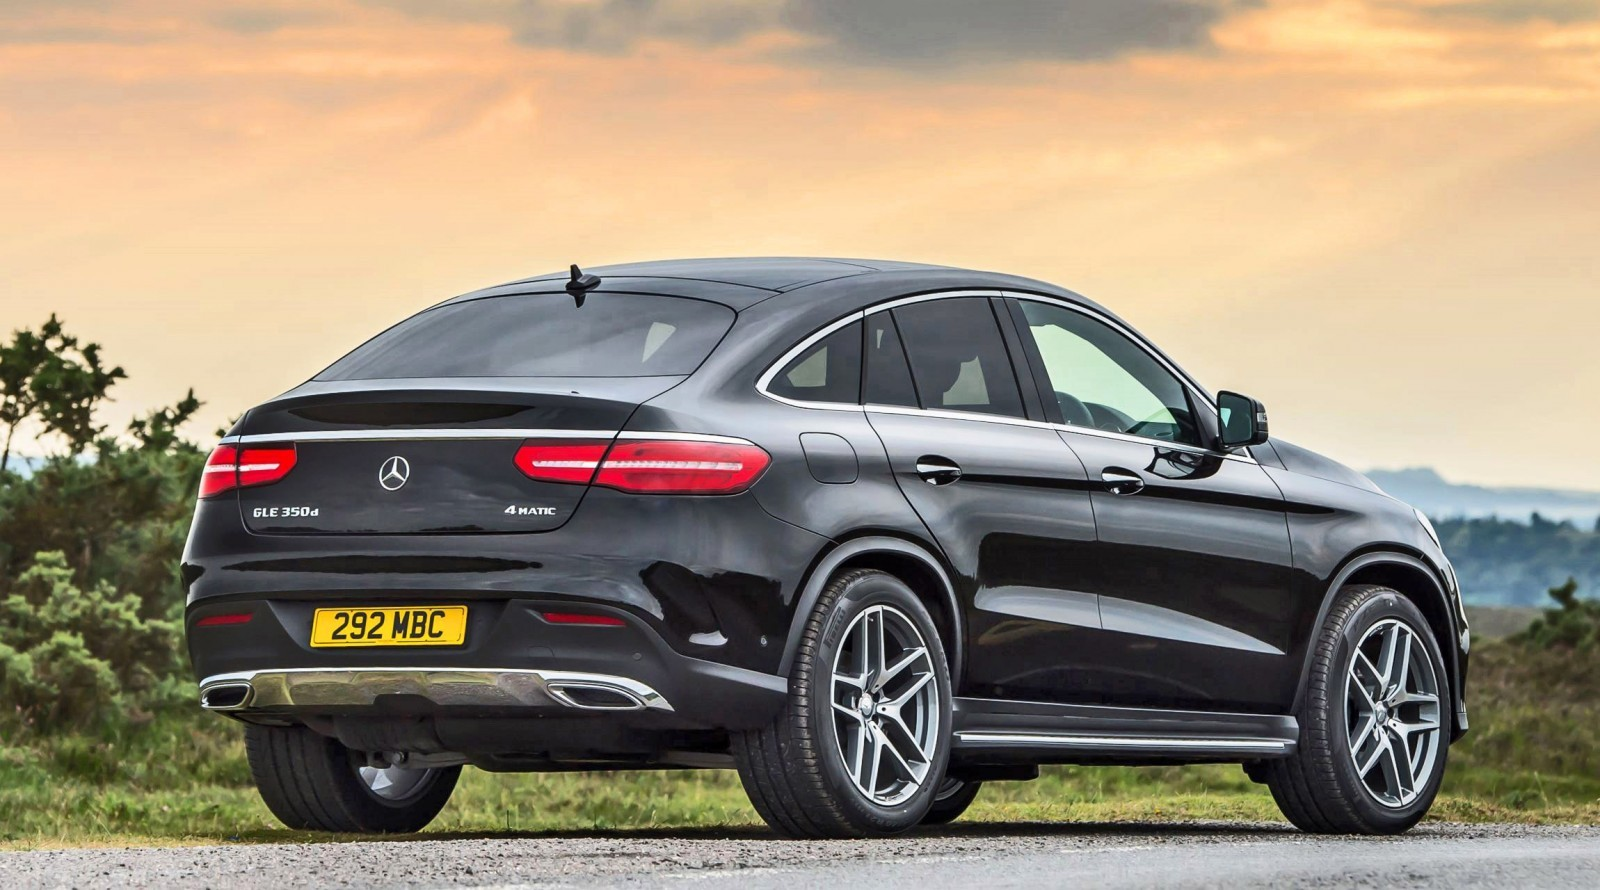 Mercedes Gle Coupe Gebraucht : 2016 mercedes benz gle coupe in 40 new photos previews gle400 twin turbo ~ Aude.kayakingforconservation.com Haus und Dekorationen